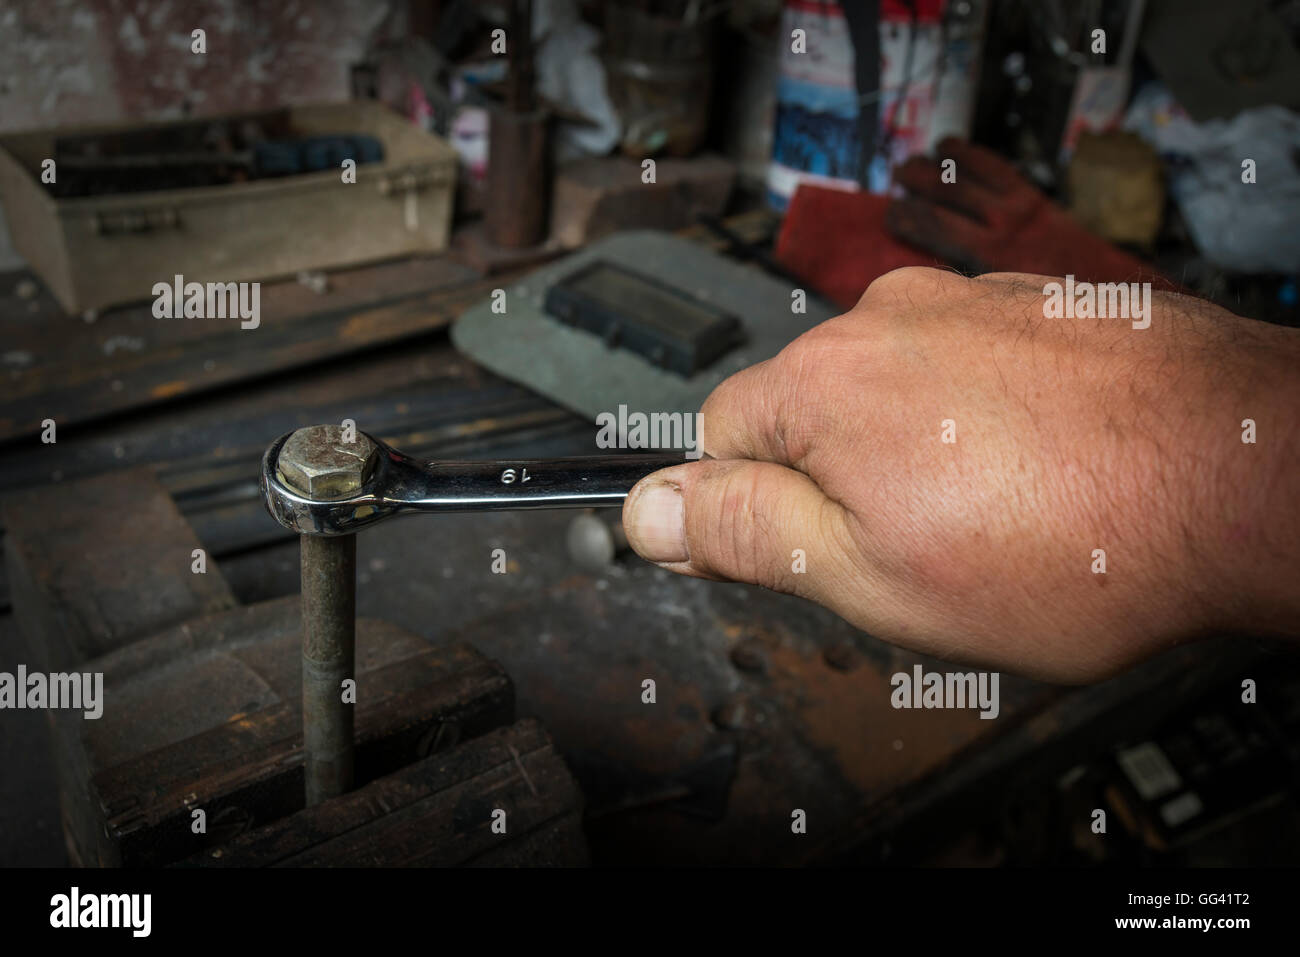 worker hand tightening or loosening a nut of a rusty bolt with a wrench - Stock Image